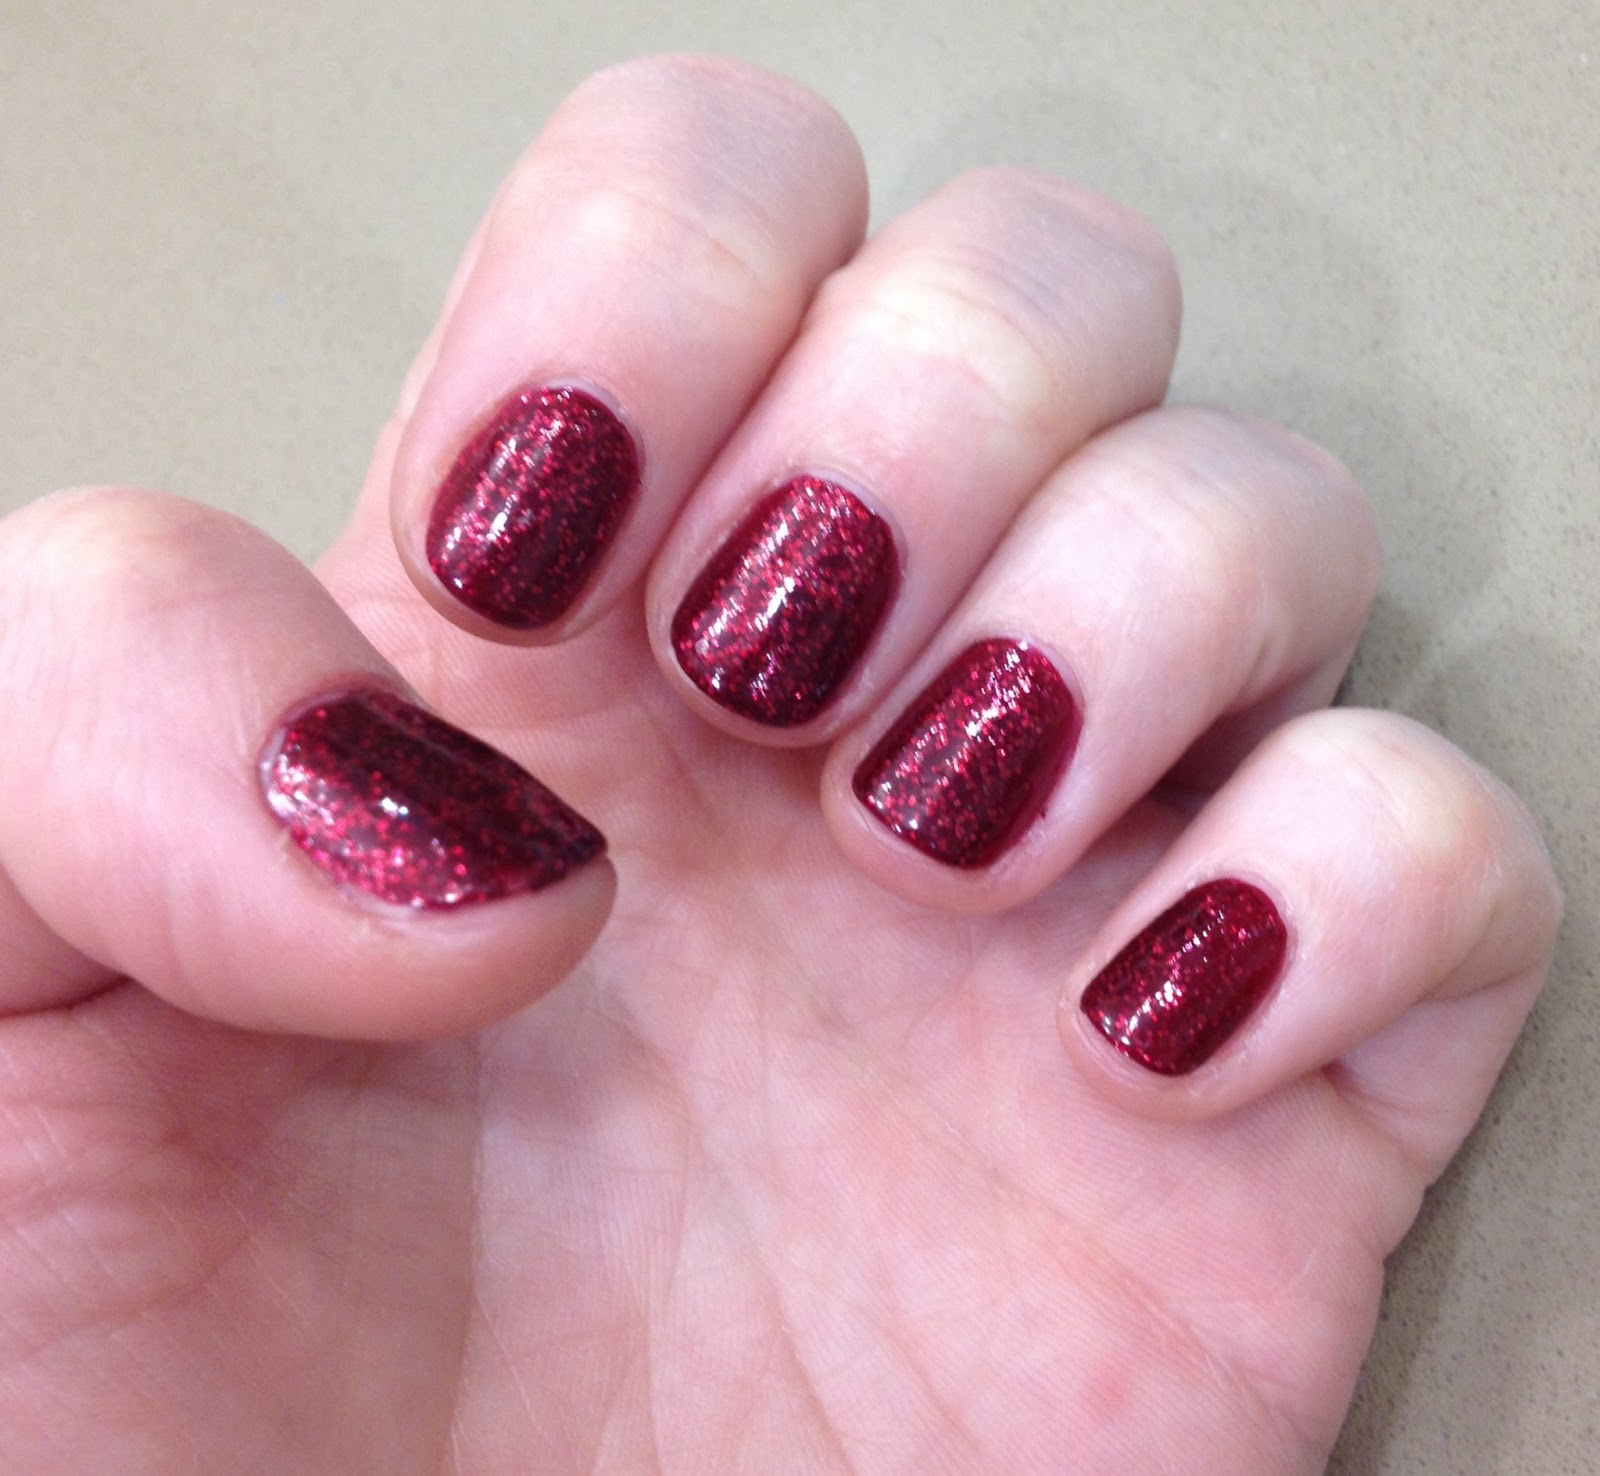 Winter Nail Polish: The Beauty Of Life: The Essie Nail Polishes I'm Obsessed